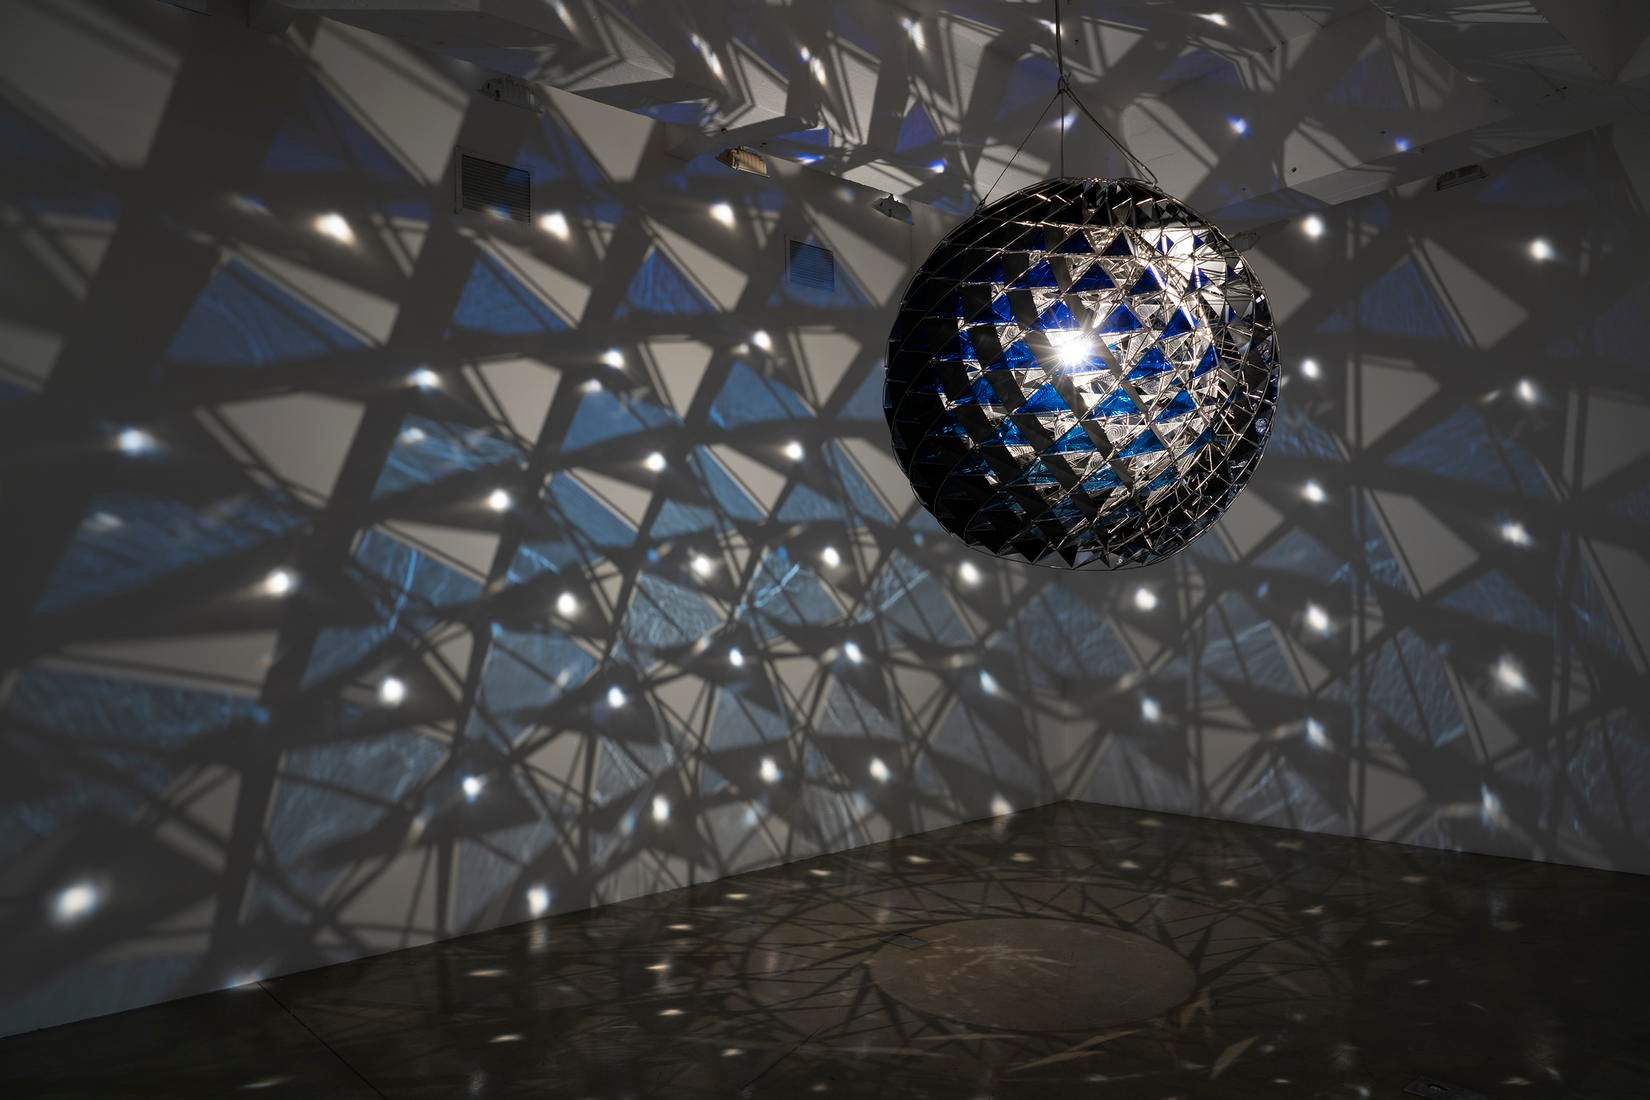 Olafur Eliasson, Return of the Arctic light sphere, 2020 (installation view)